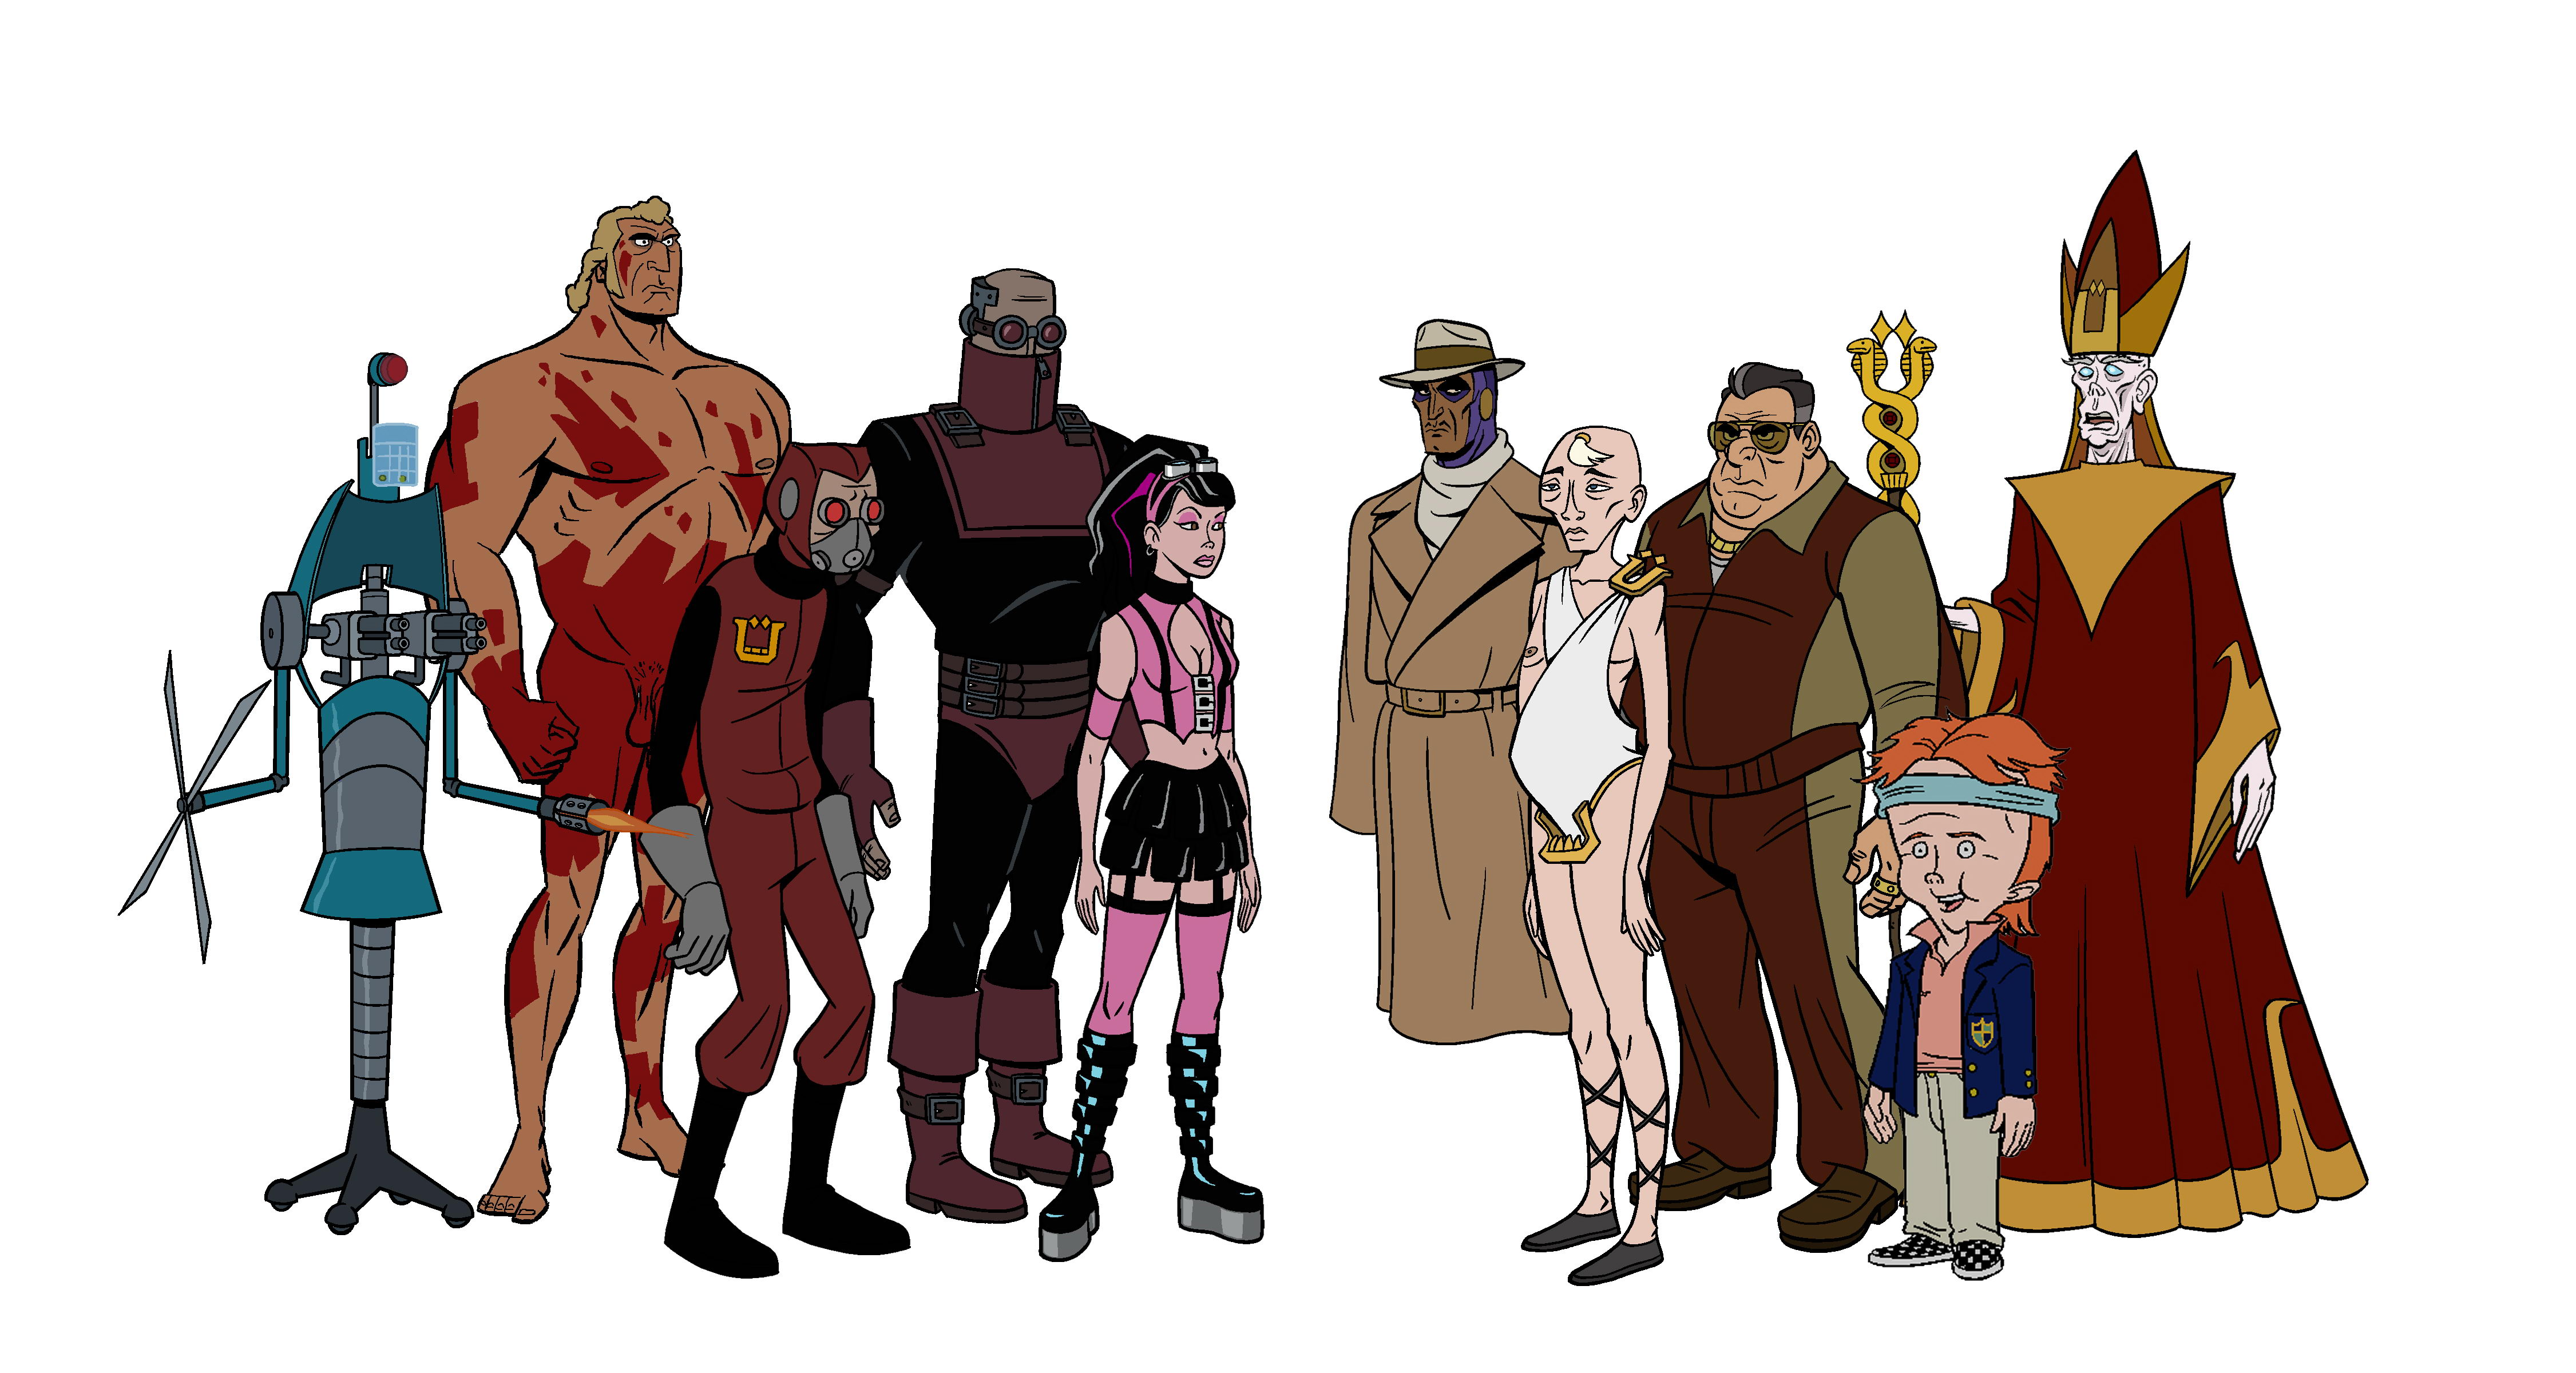 The Venture Bros 4k Ultra HD Wallpaper Background Image 4502x2400